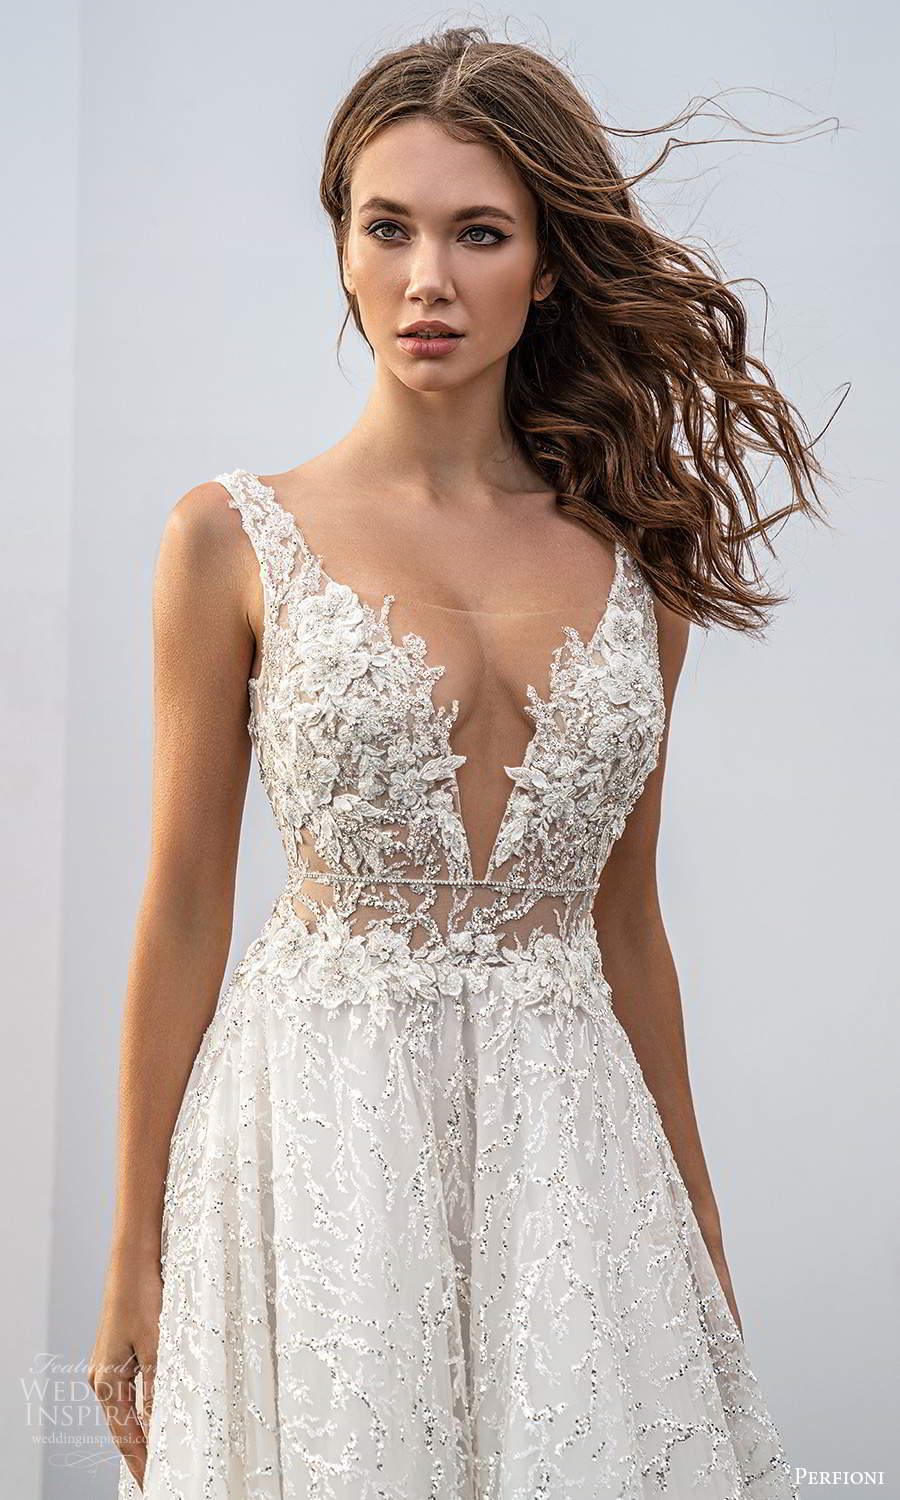 perfioni 2021 bridal sleeveless straps plunging v neckline fully embellished a line ball gown wedding dress chapel train (6) zv